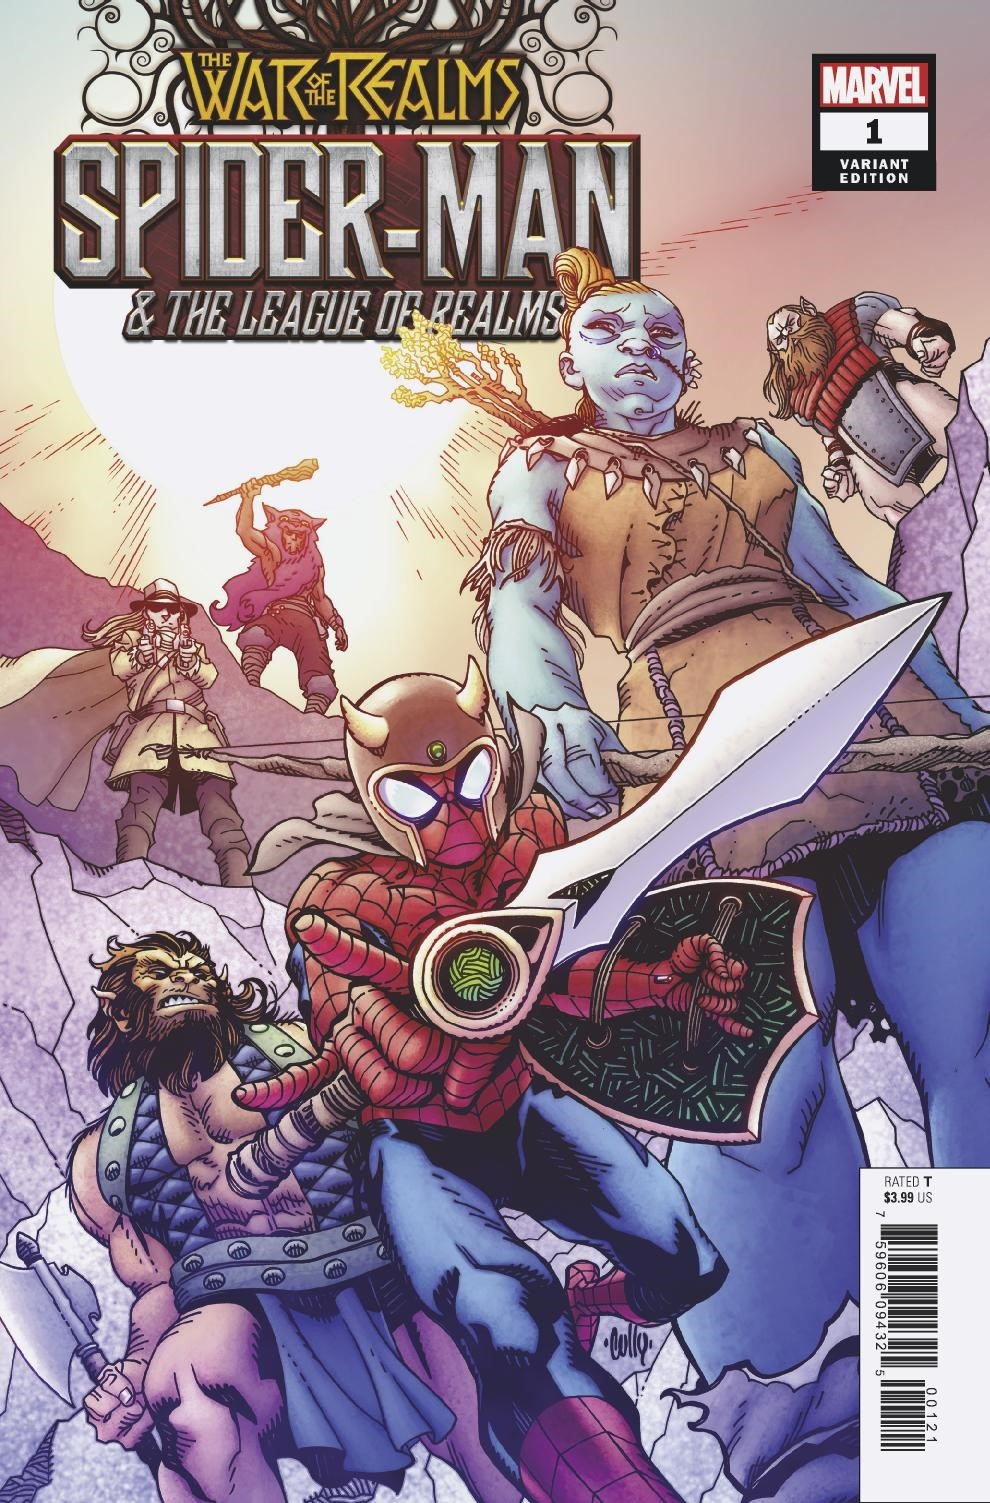 WAR OF REALMS SPIDER-MAN & LEAGUE OF REALMS #1 (OF 3) HAMNER